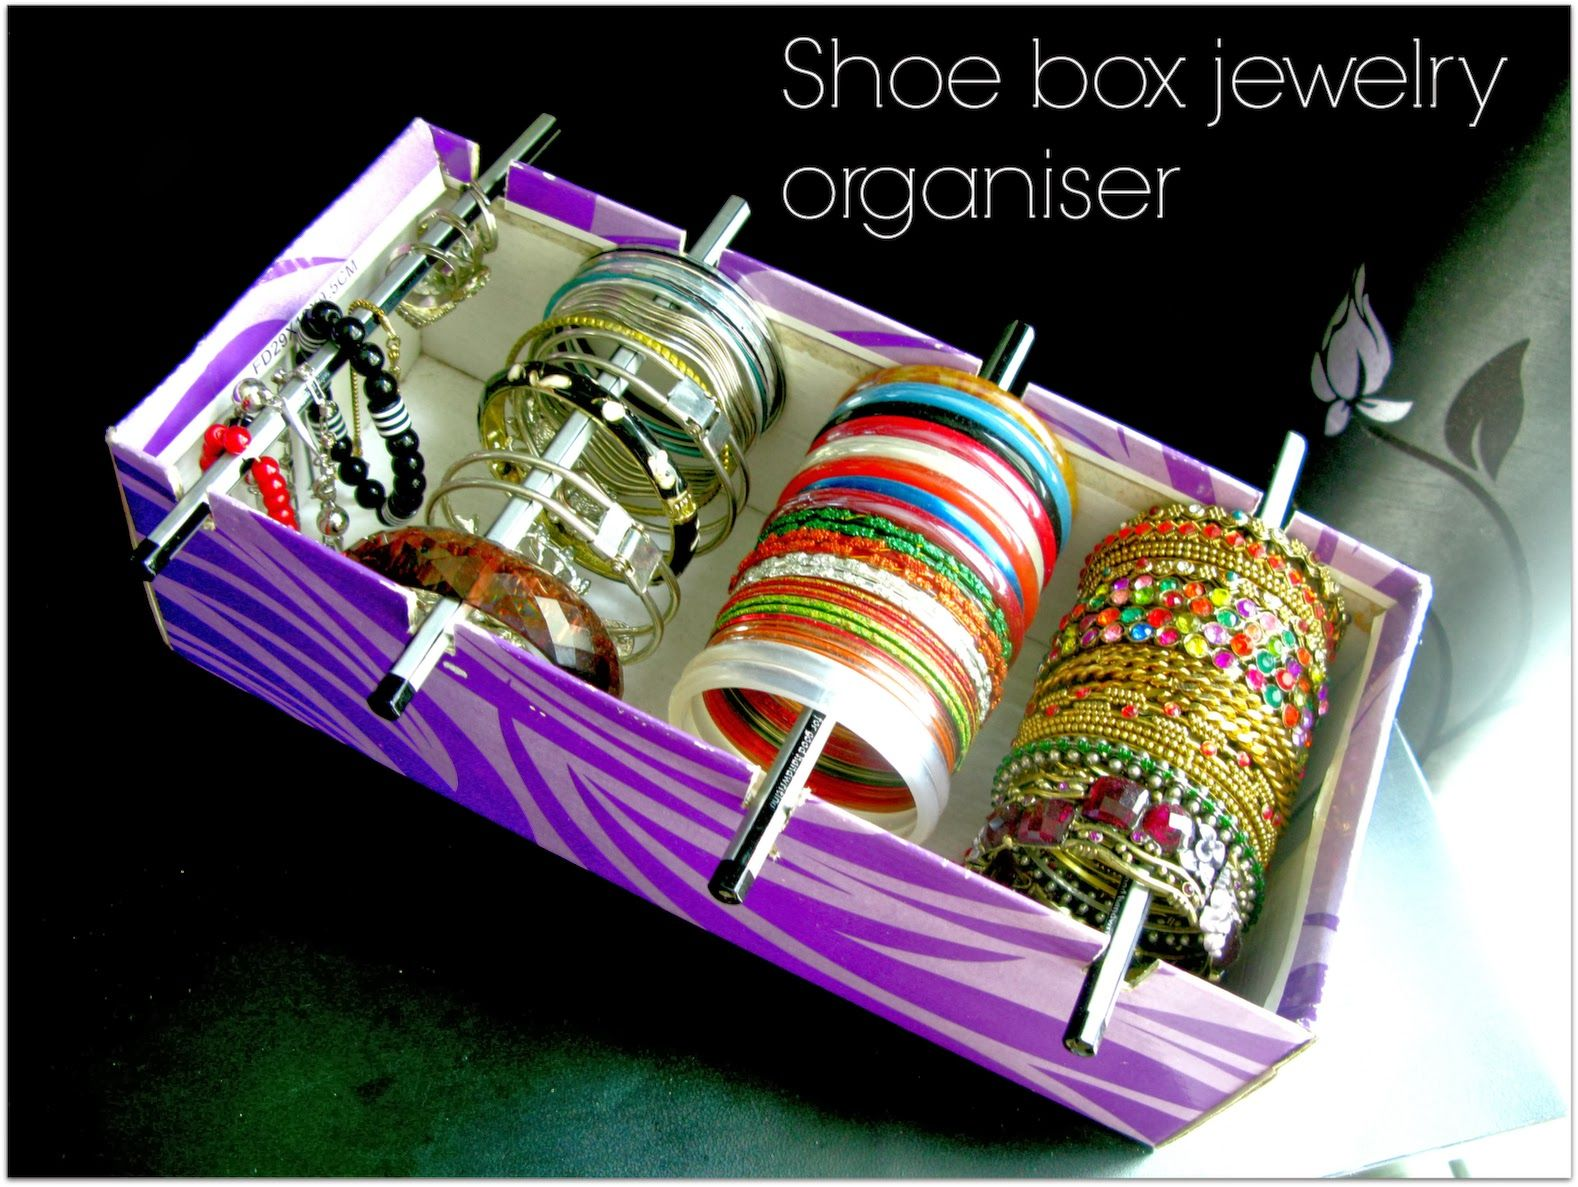 Bracelet Organizer Ideas Quickly Convert An Empty Shoe Box Into A Handy Bracelet Organizer